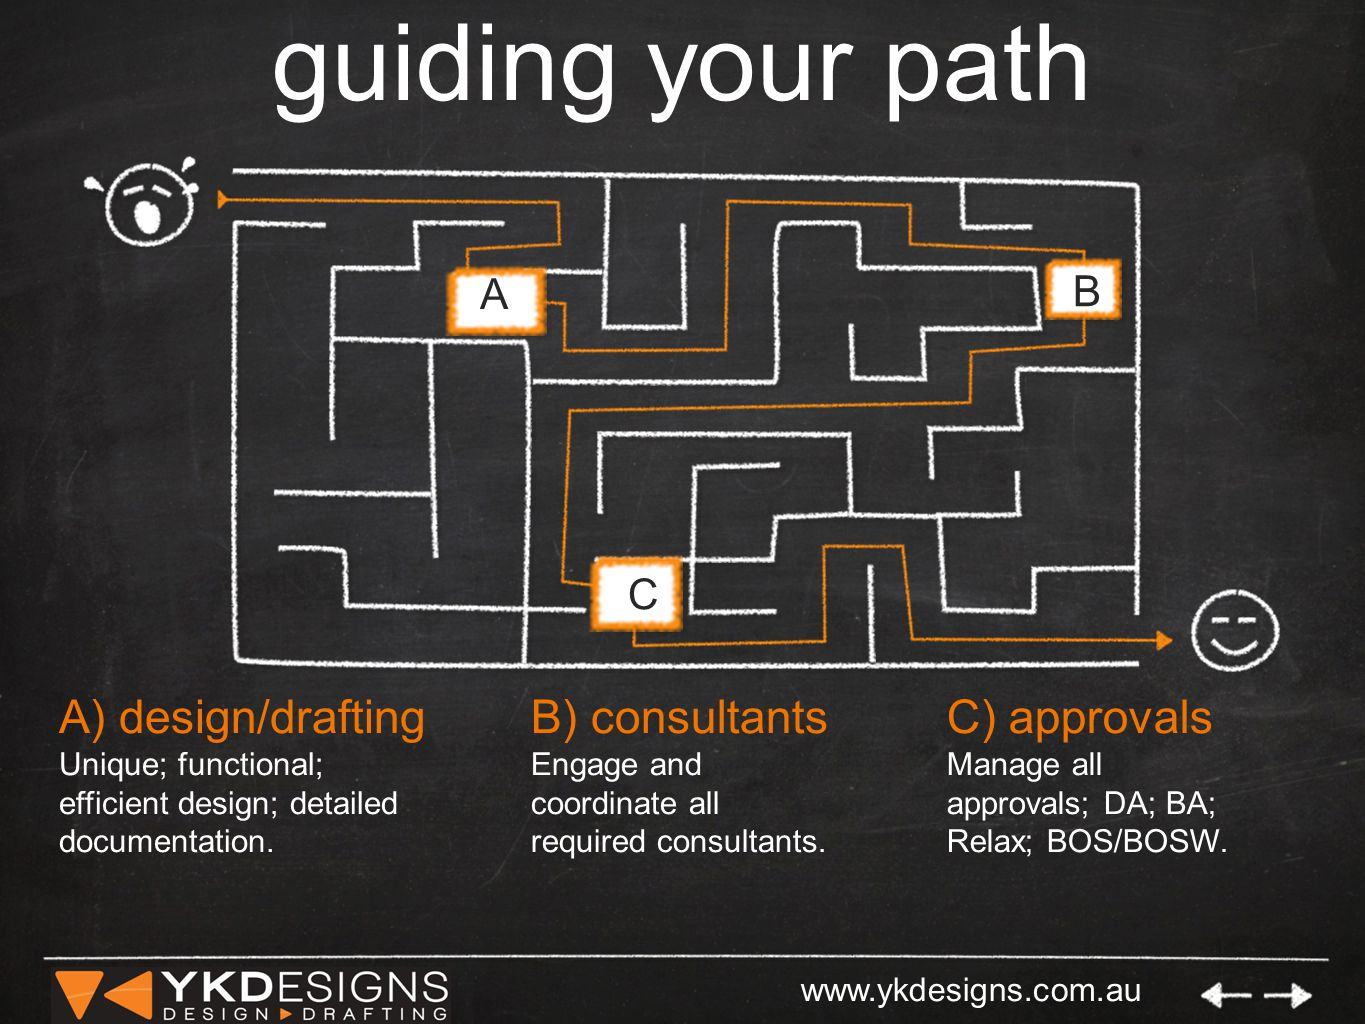 www.ykdesigns.com.au guiding your path A) design/drafting Unique; functional; efficient design; detailed documentation.